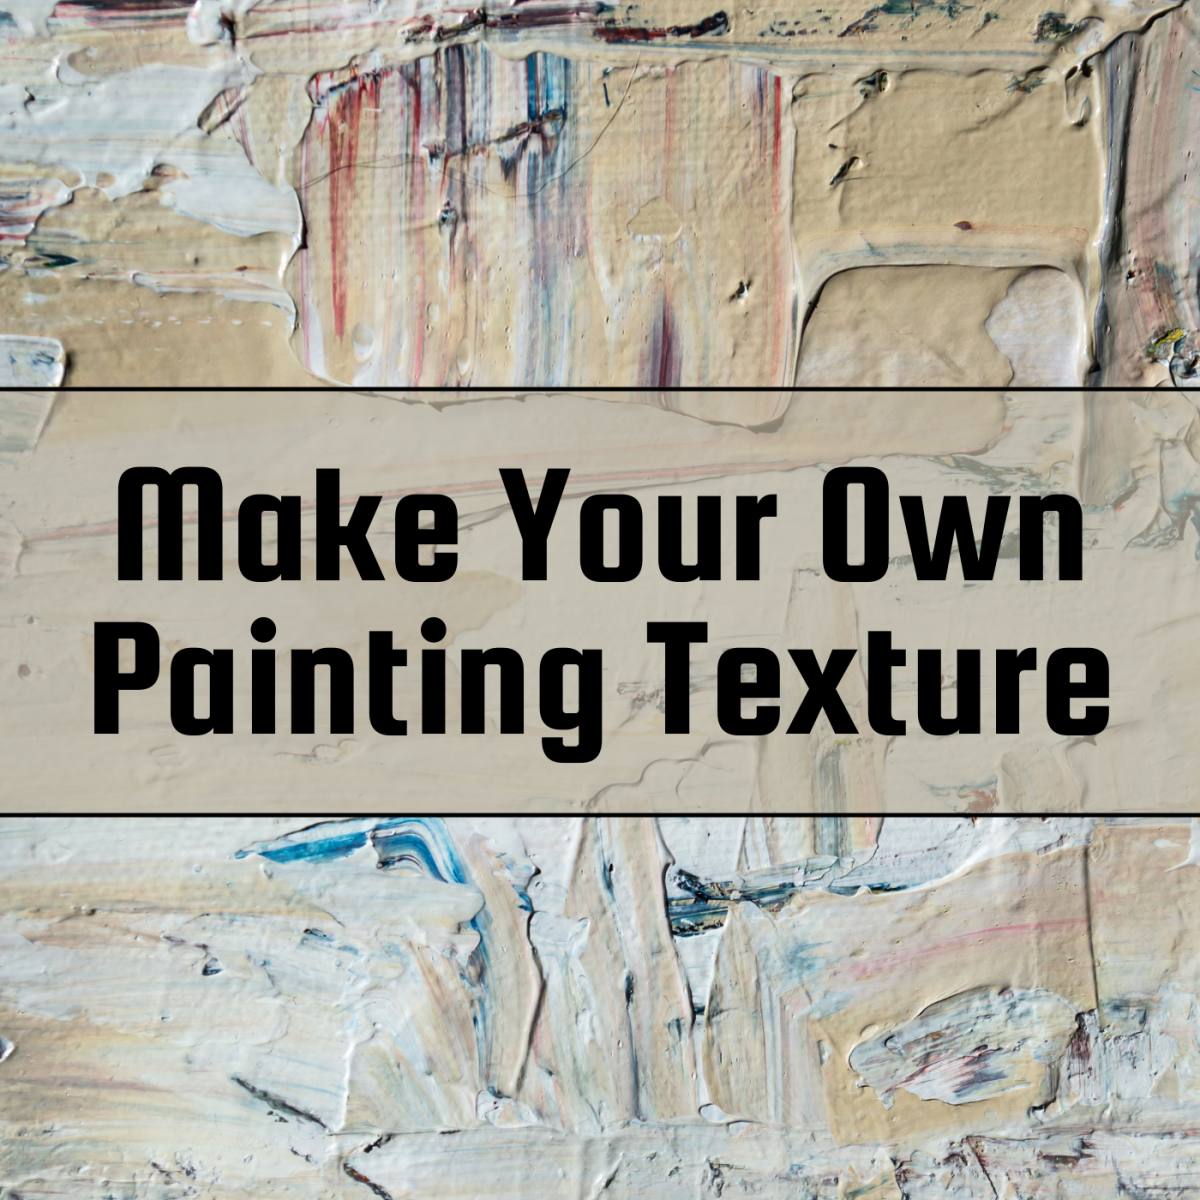 How to Make Your Own Painting Texture